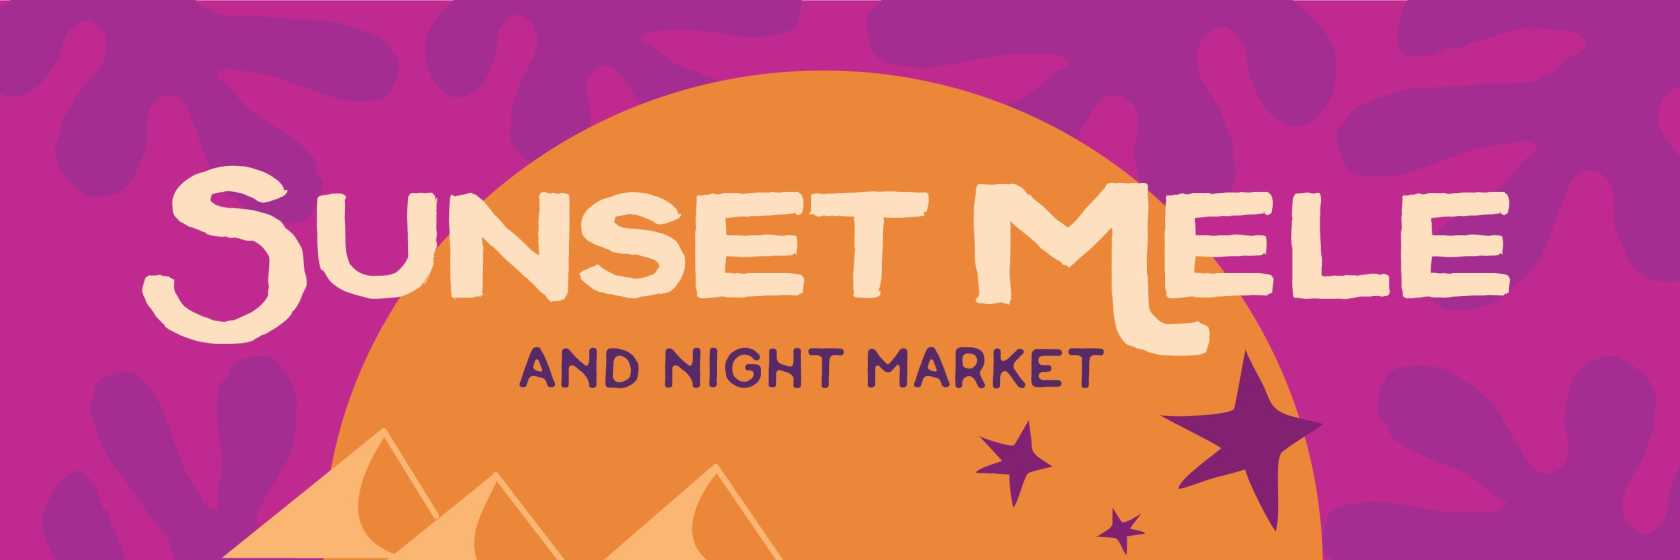 Sunset Mele and Night Mkt header